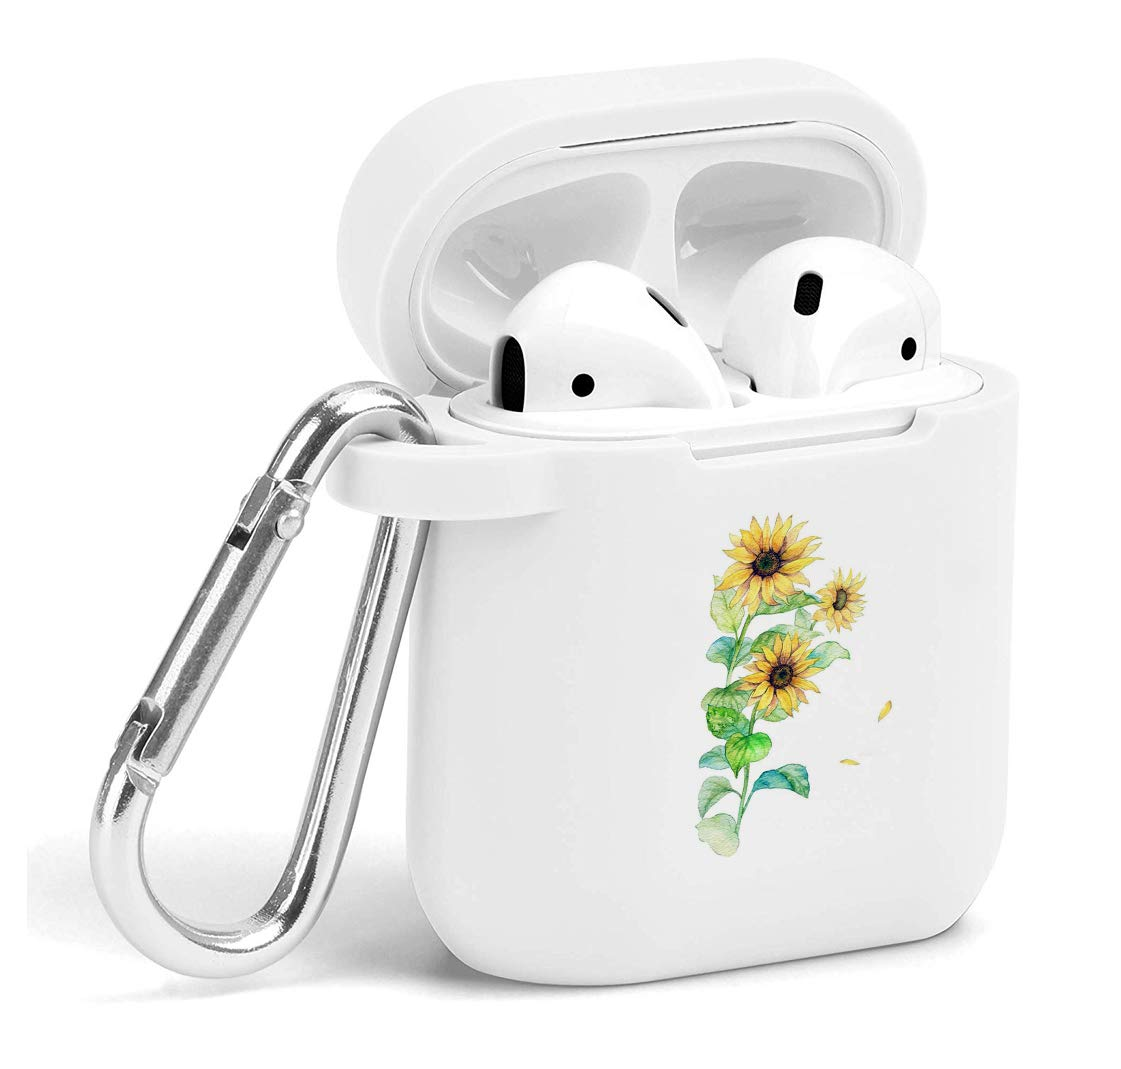 Case for Air Pods Sunflower - Soft Flexible Protector Silicone Holder Cover Cute with Keychain Accessories Compatible with Airpods Sunflower